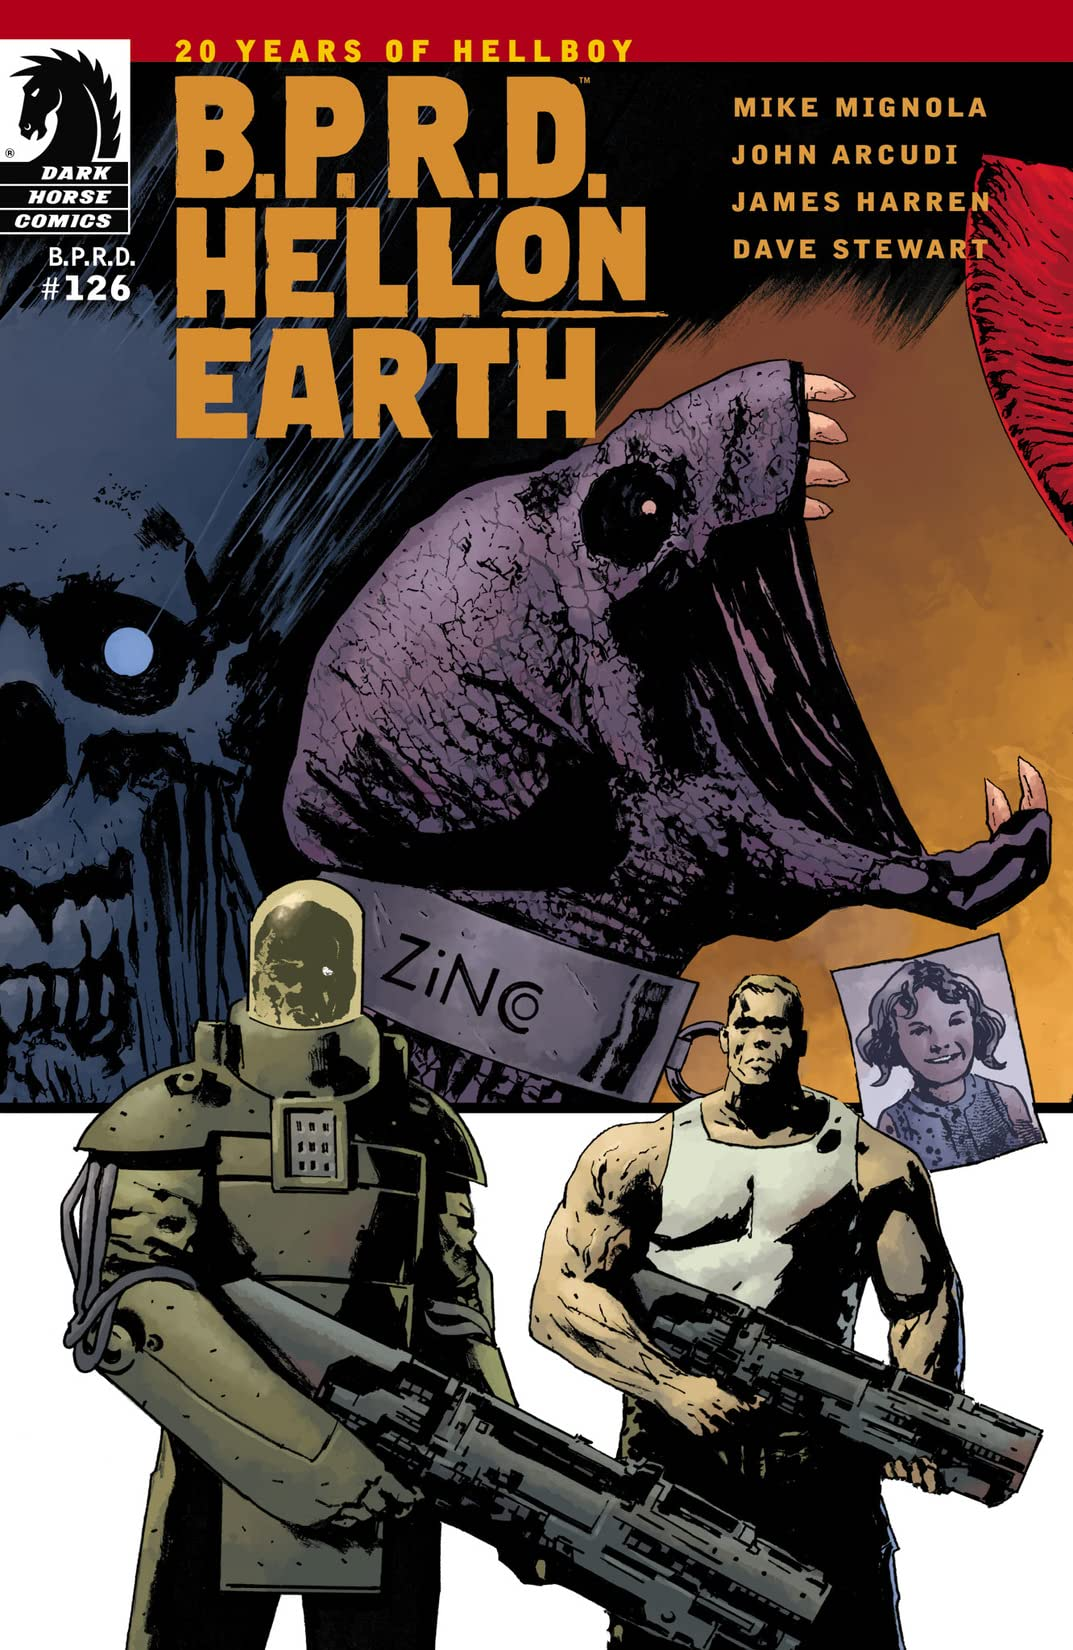 B.P.R.D.: Hell on Earth #126